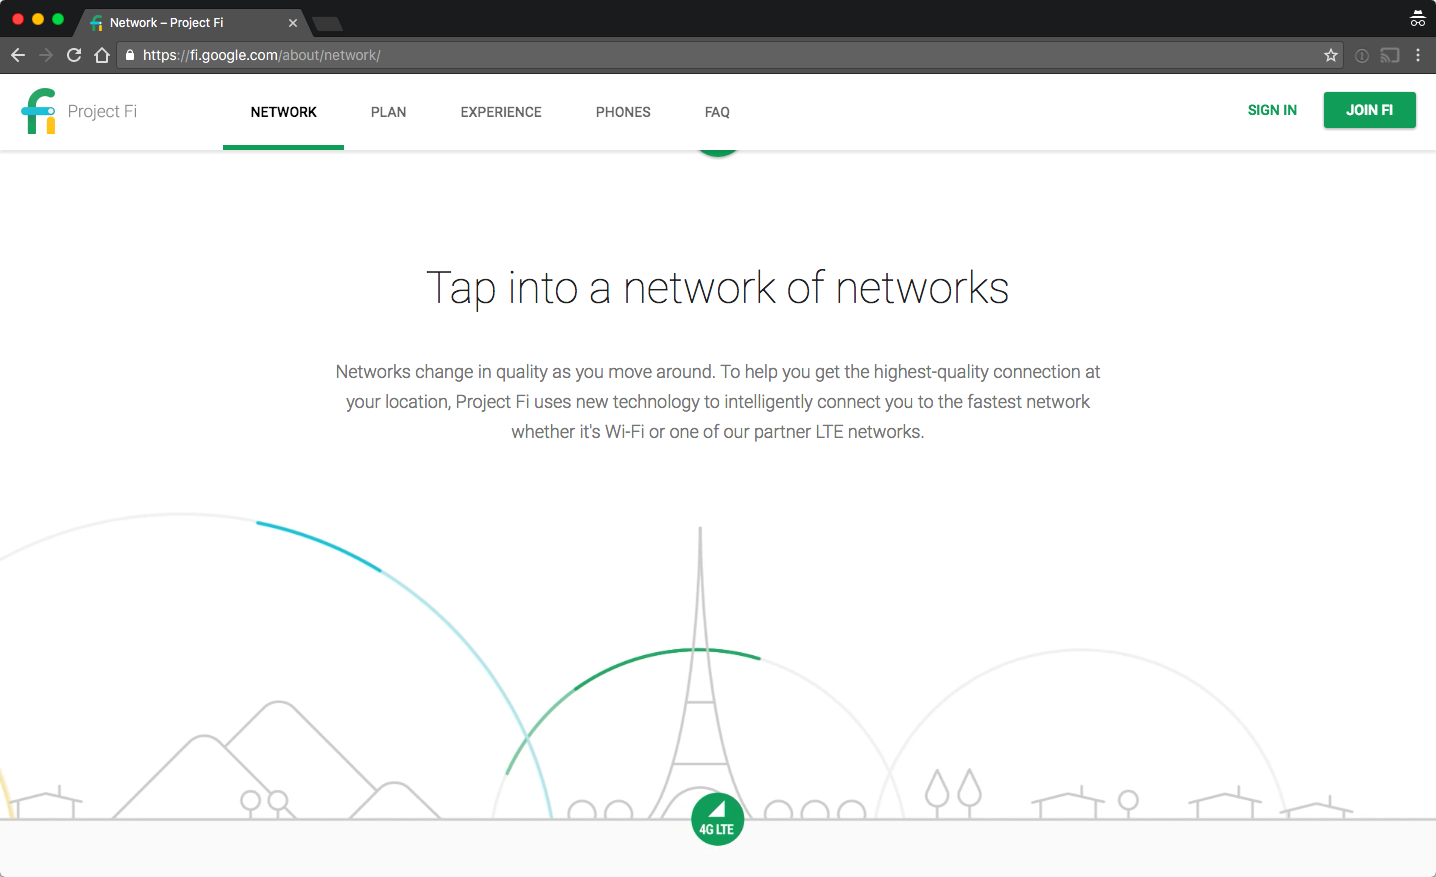 network-project-fi-2016-10-02-02-47-09